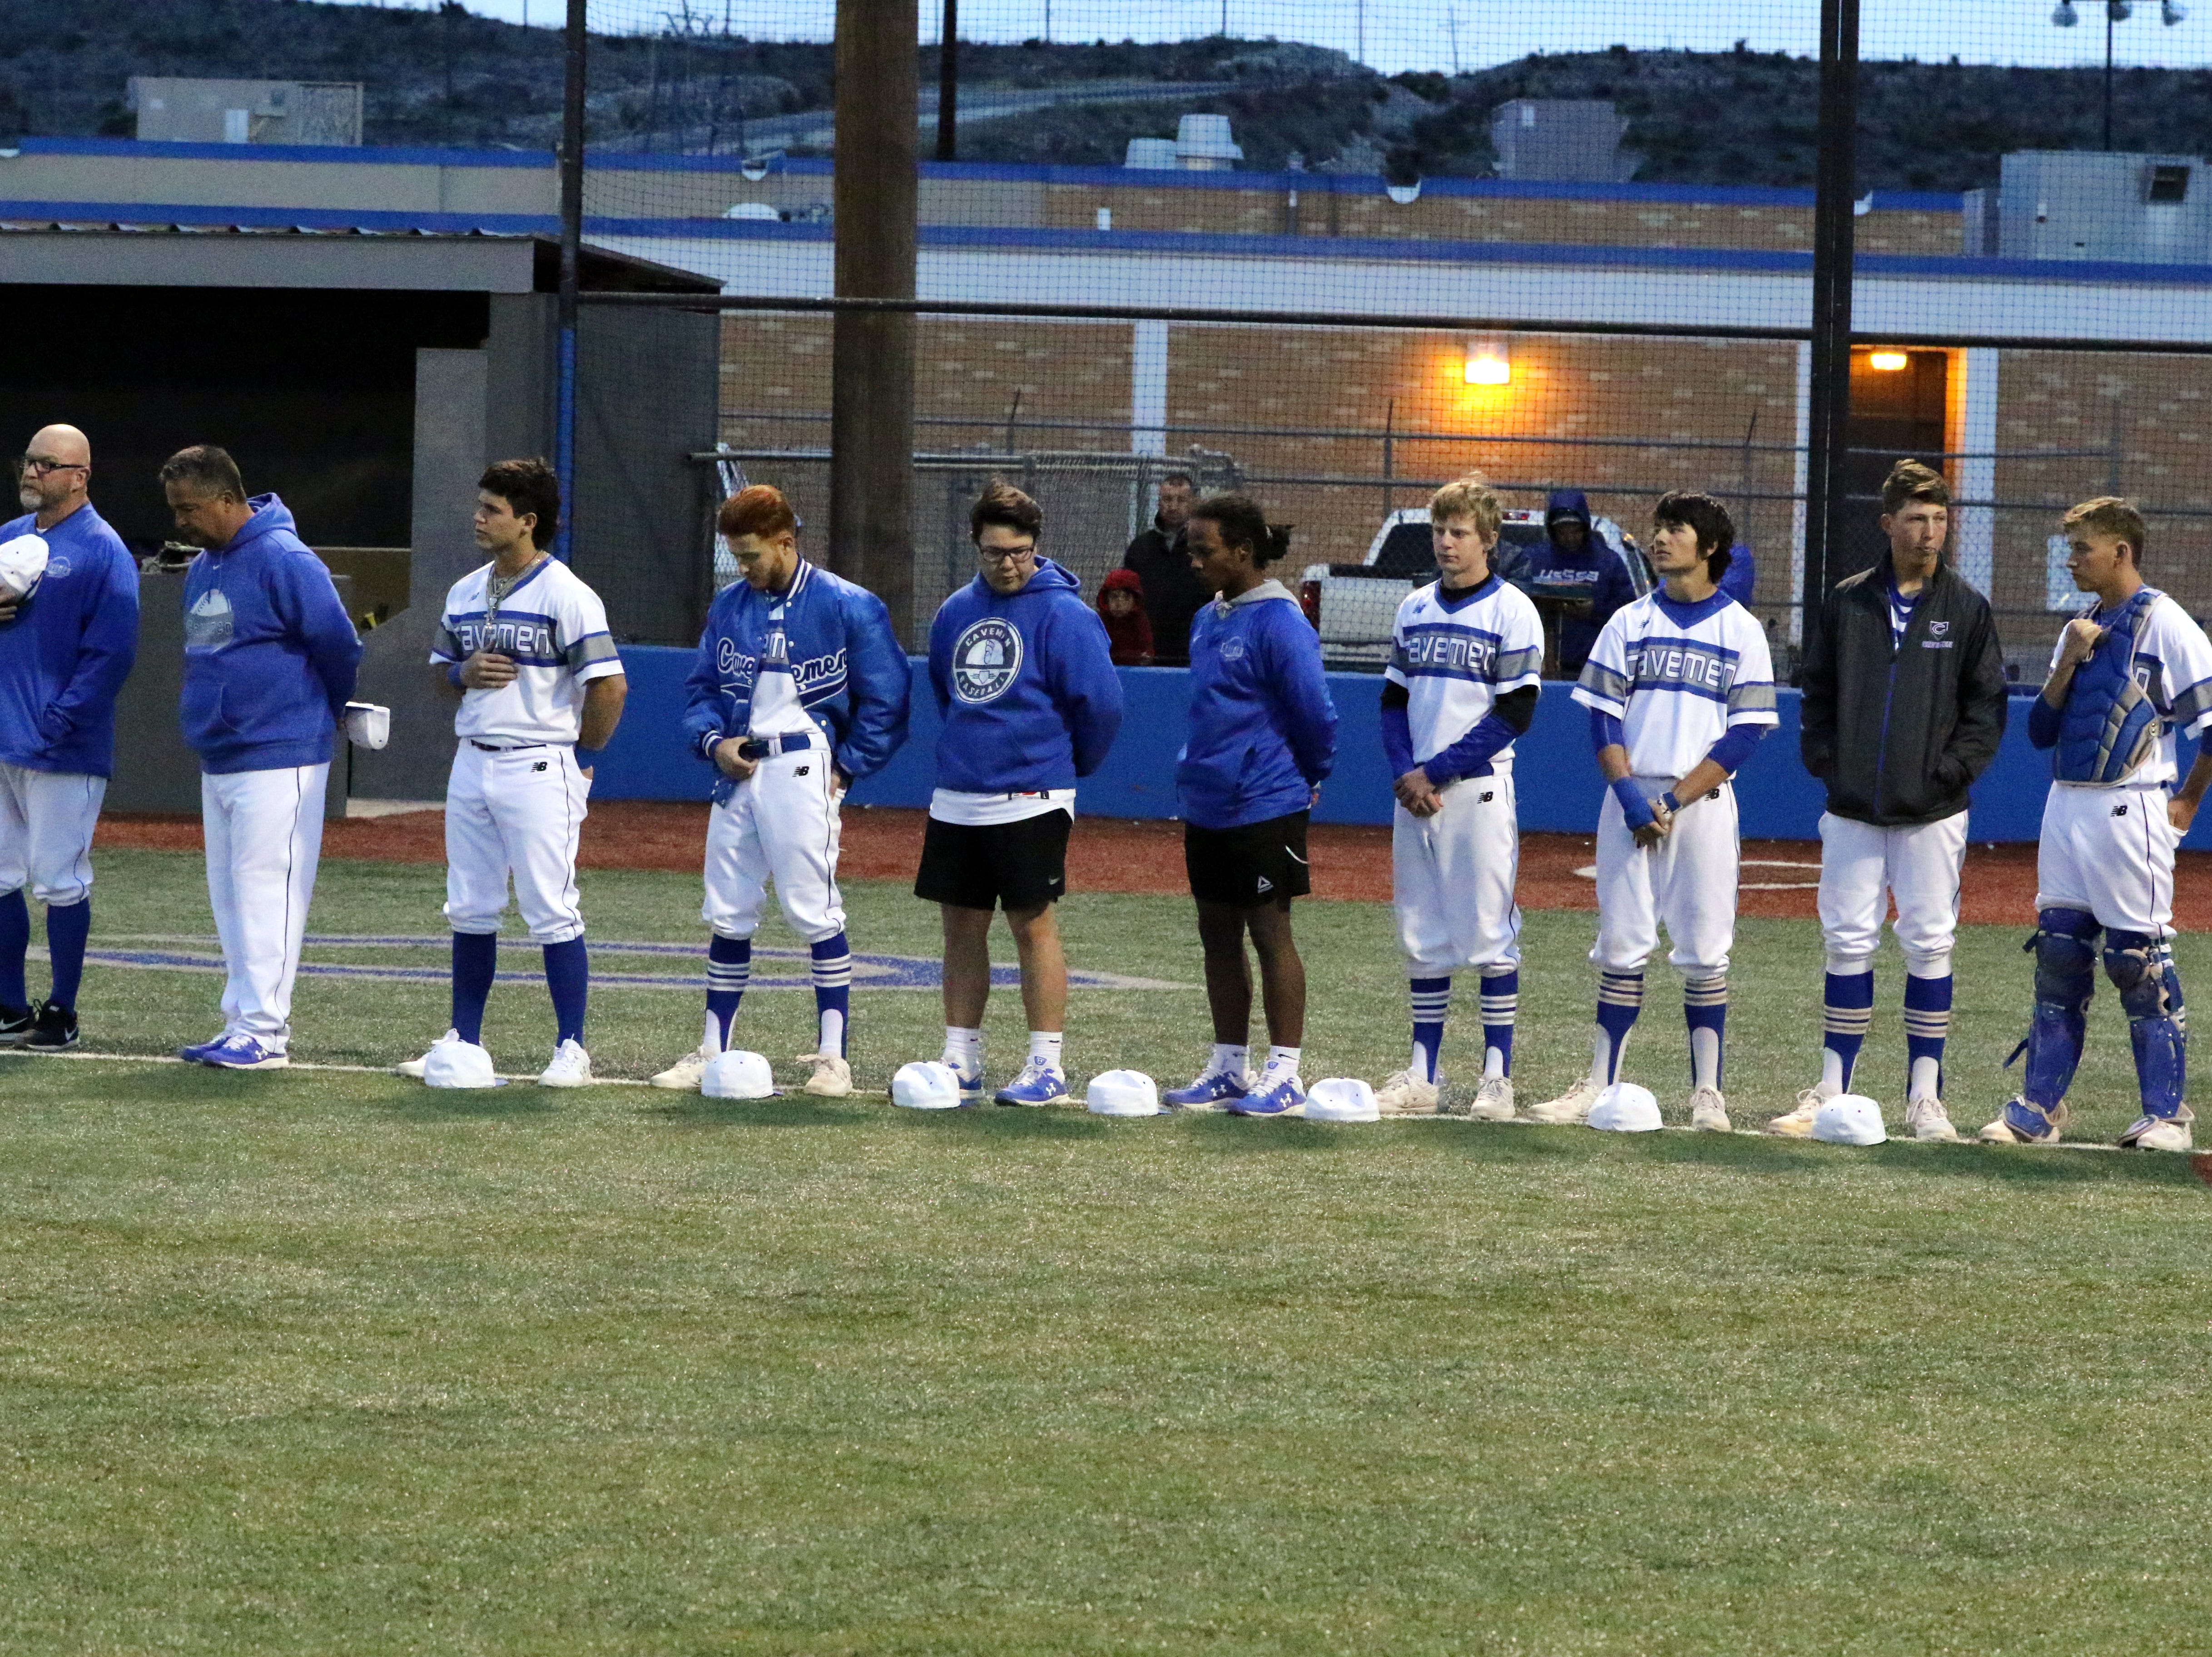 Photo highlights from the pregame to the March 9 game between Carlsbad and Artesia. Artesia won, 3-2.